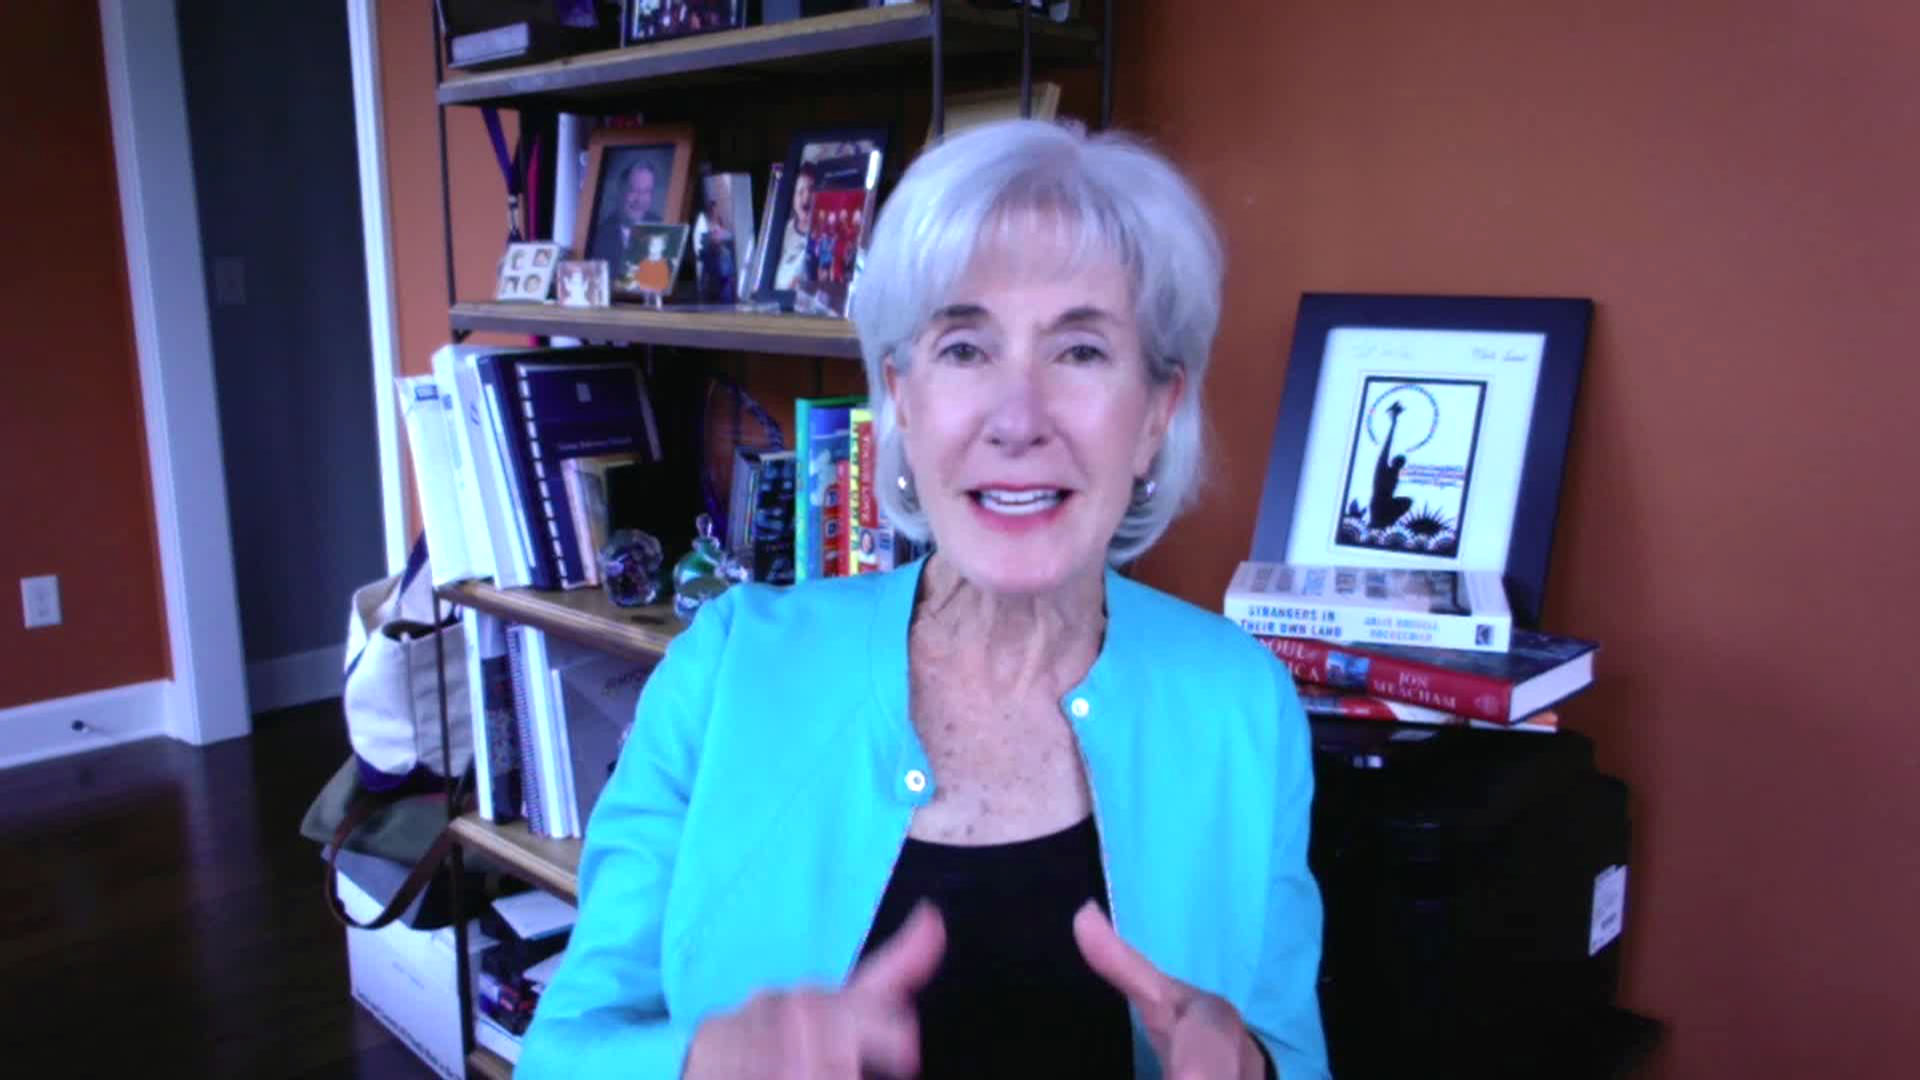 Former US secretary of health and human services Kathleen Sebelius.